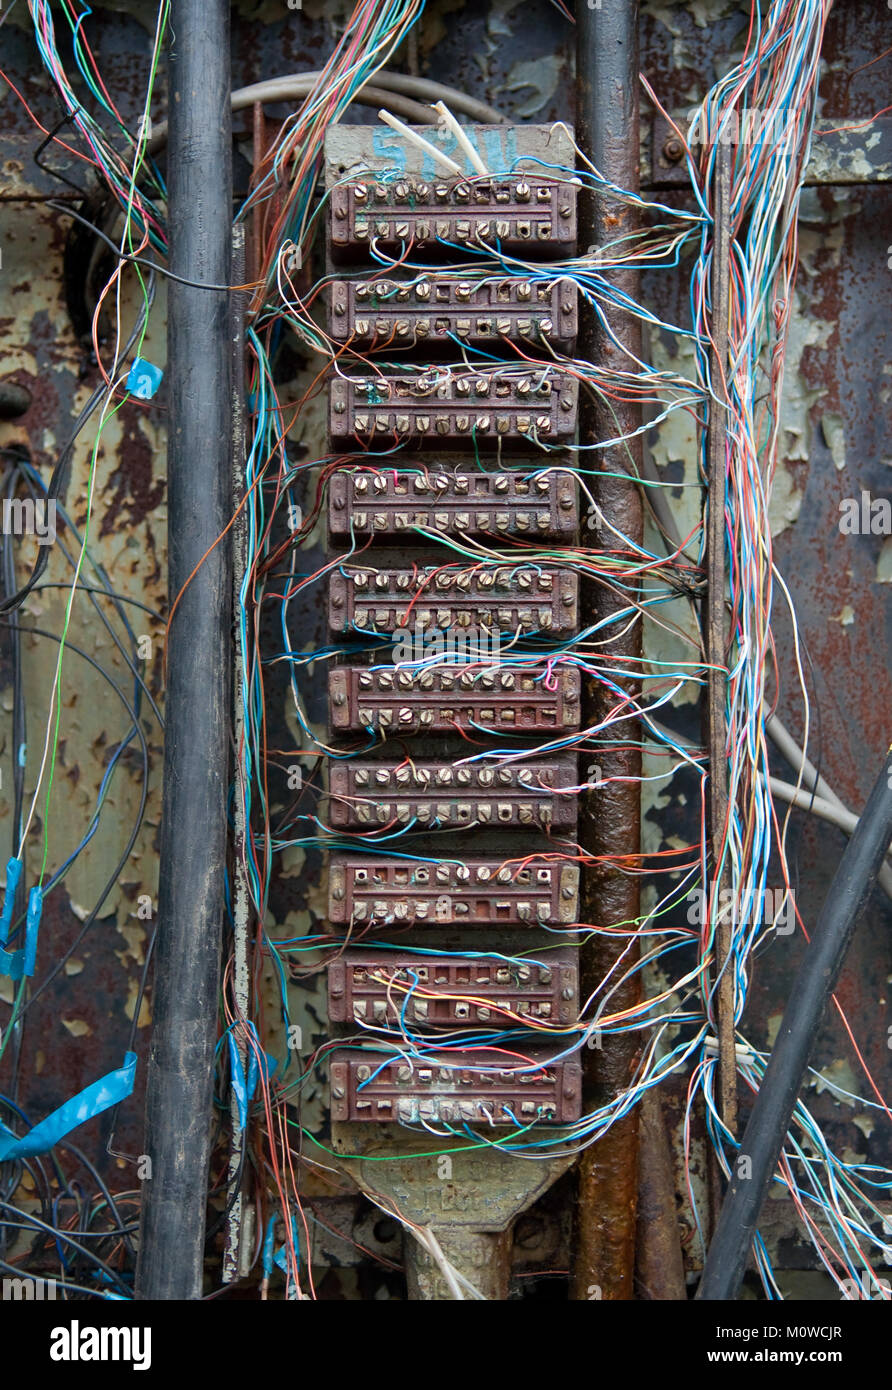 Old Telephone Wiring